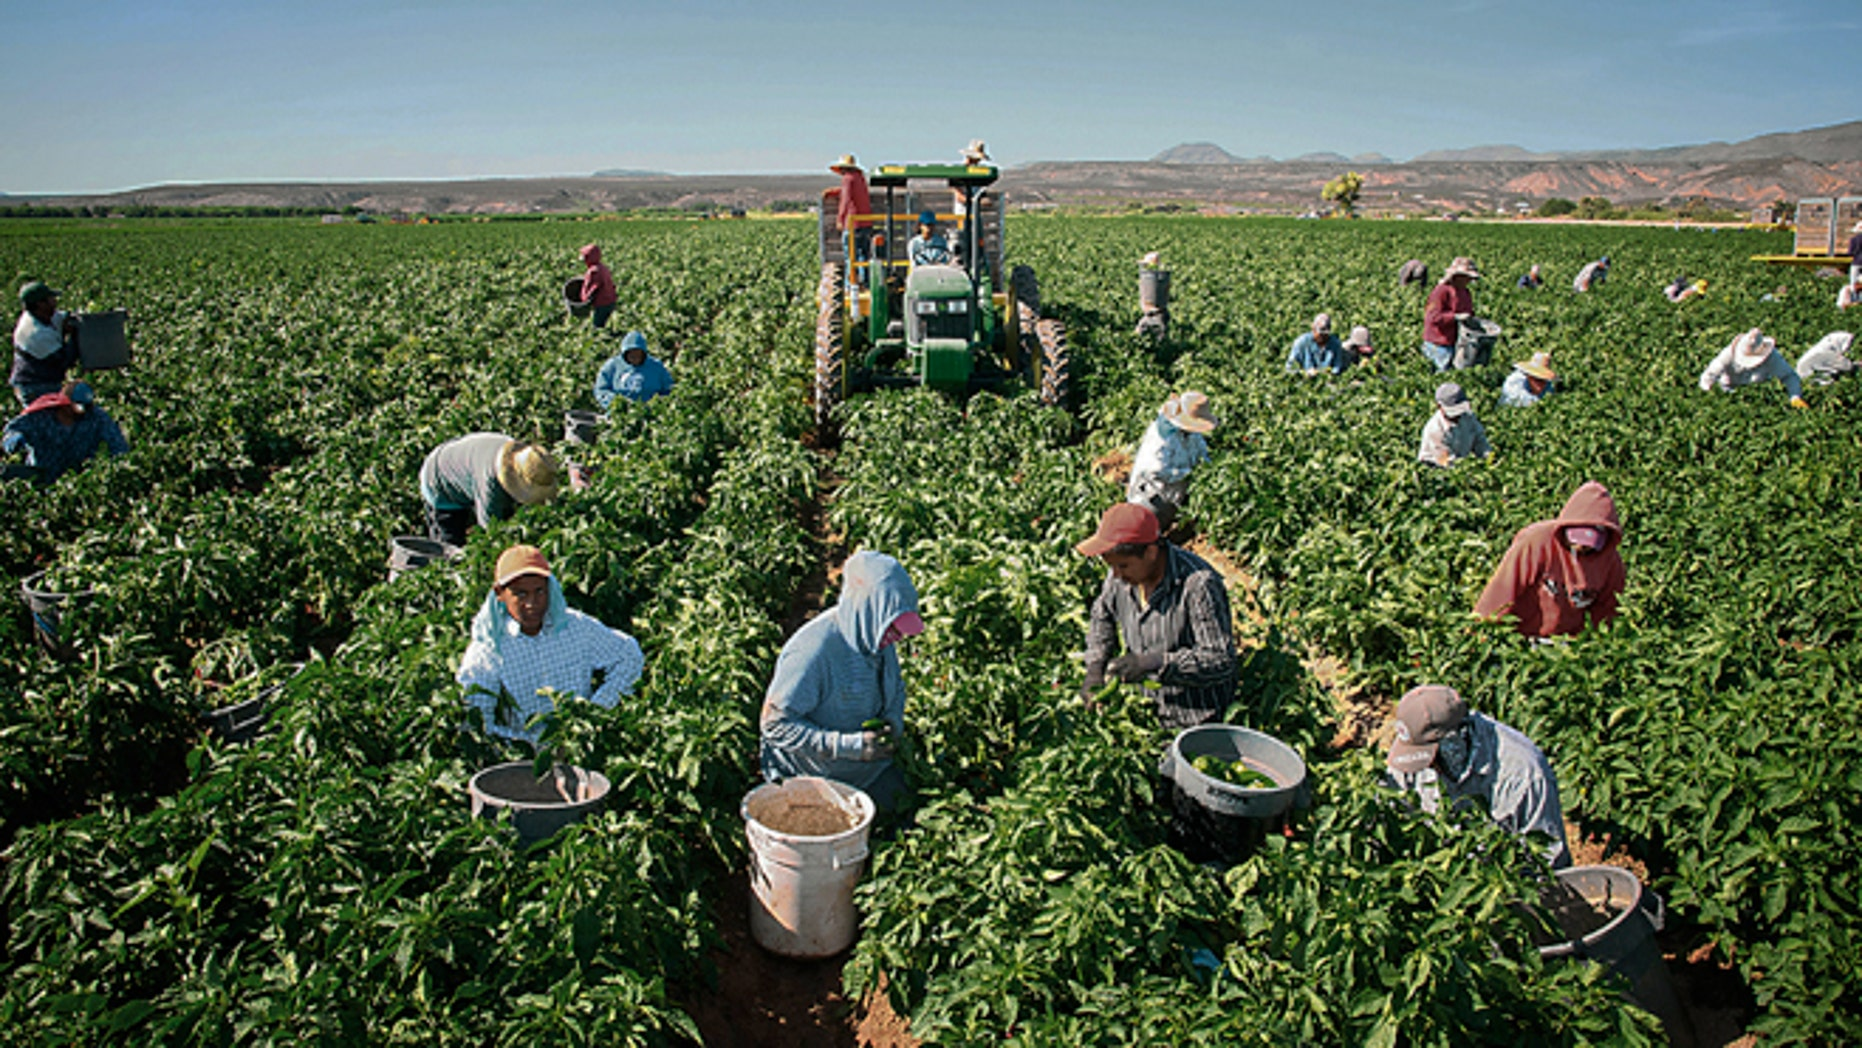 In this Saturday, July 25, 215 photo, workers harvest chile on the 350-acre Adams Produce farm near Hatch, New Mexico. Efforts are underway to save the green chile thats important to traditional New Mexican fare as labor shortages, a previous severe drought and competition from China, India and Mexico endanger its growth in the state. (Jett Loe/Las Cruces Sun-News via AP)MANDATORY CREDIT